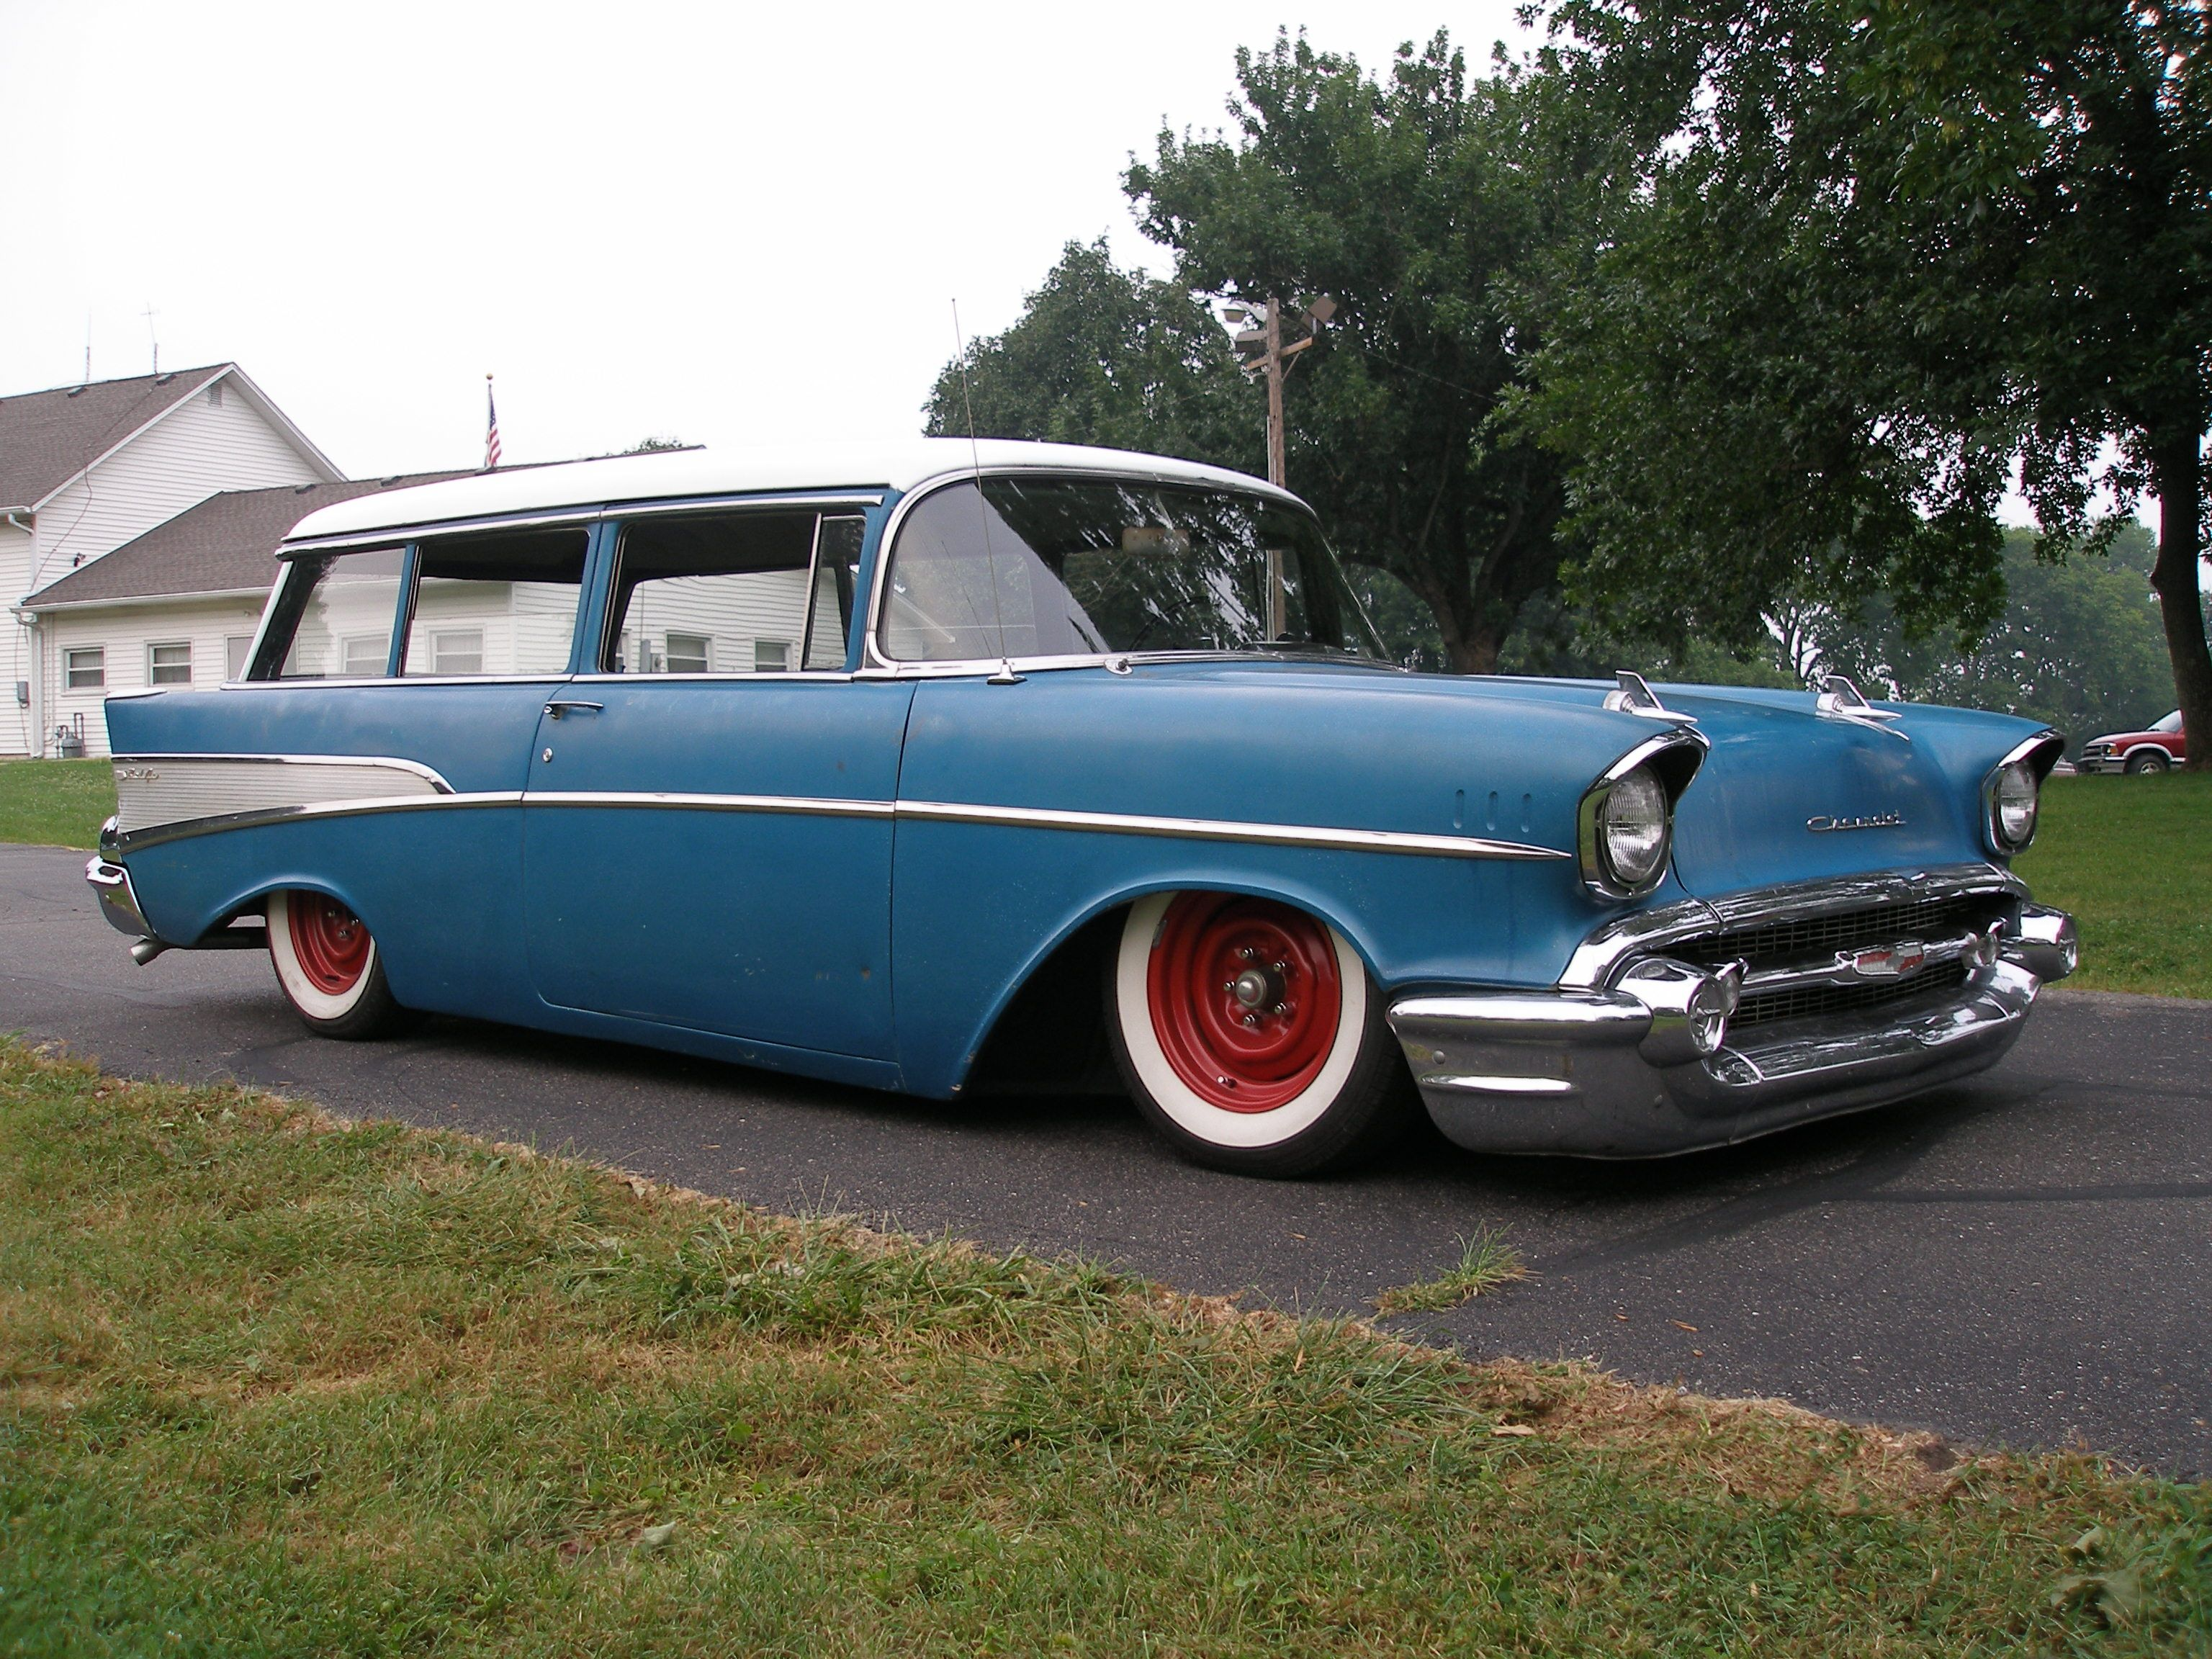 1955 chevrolet handyman 2 door wagon street rod - Dropped 57 Wagon